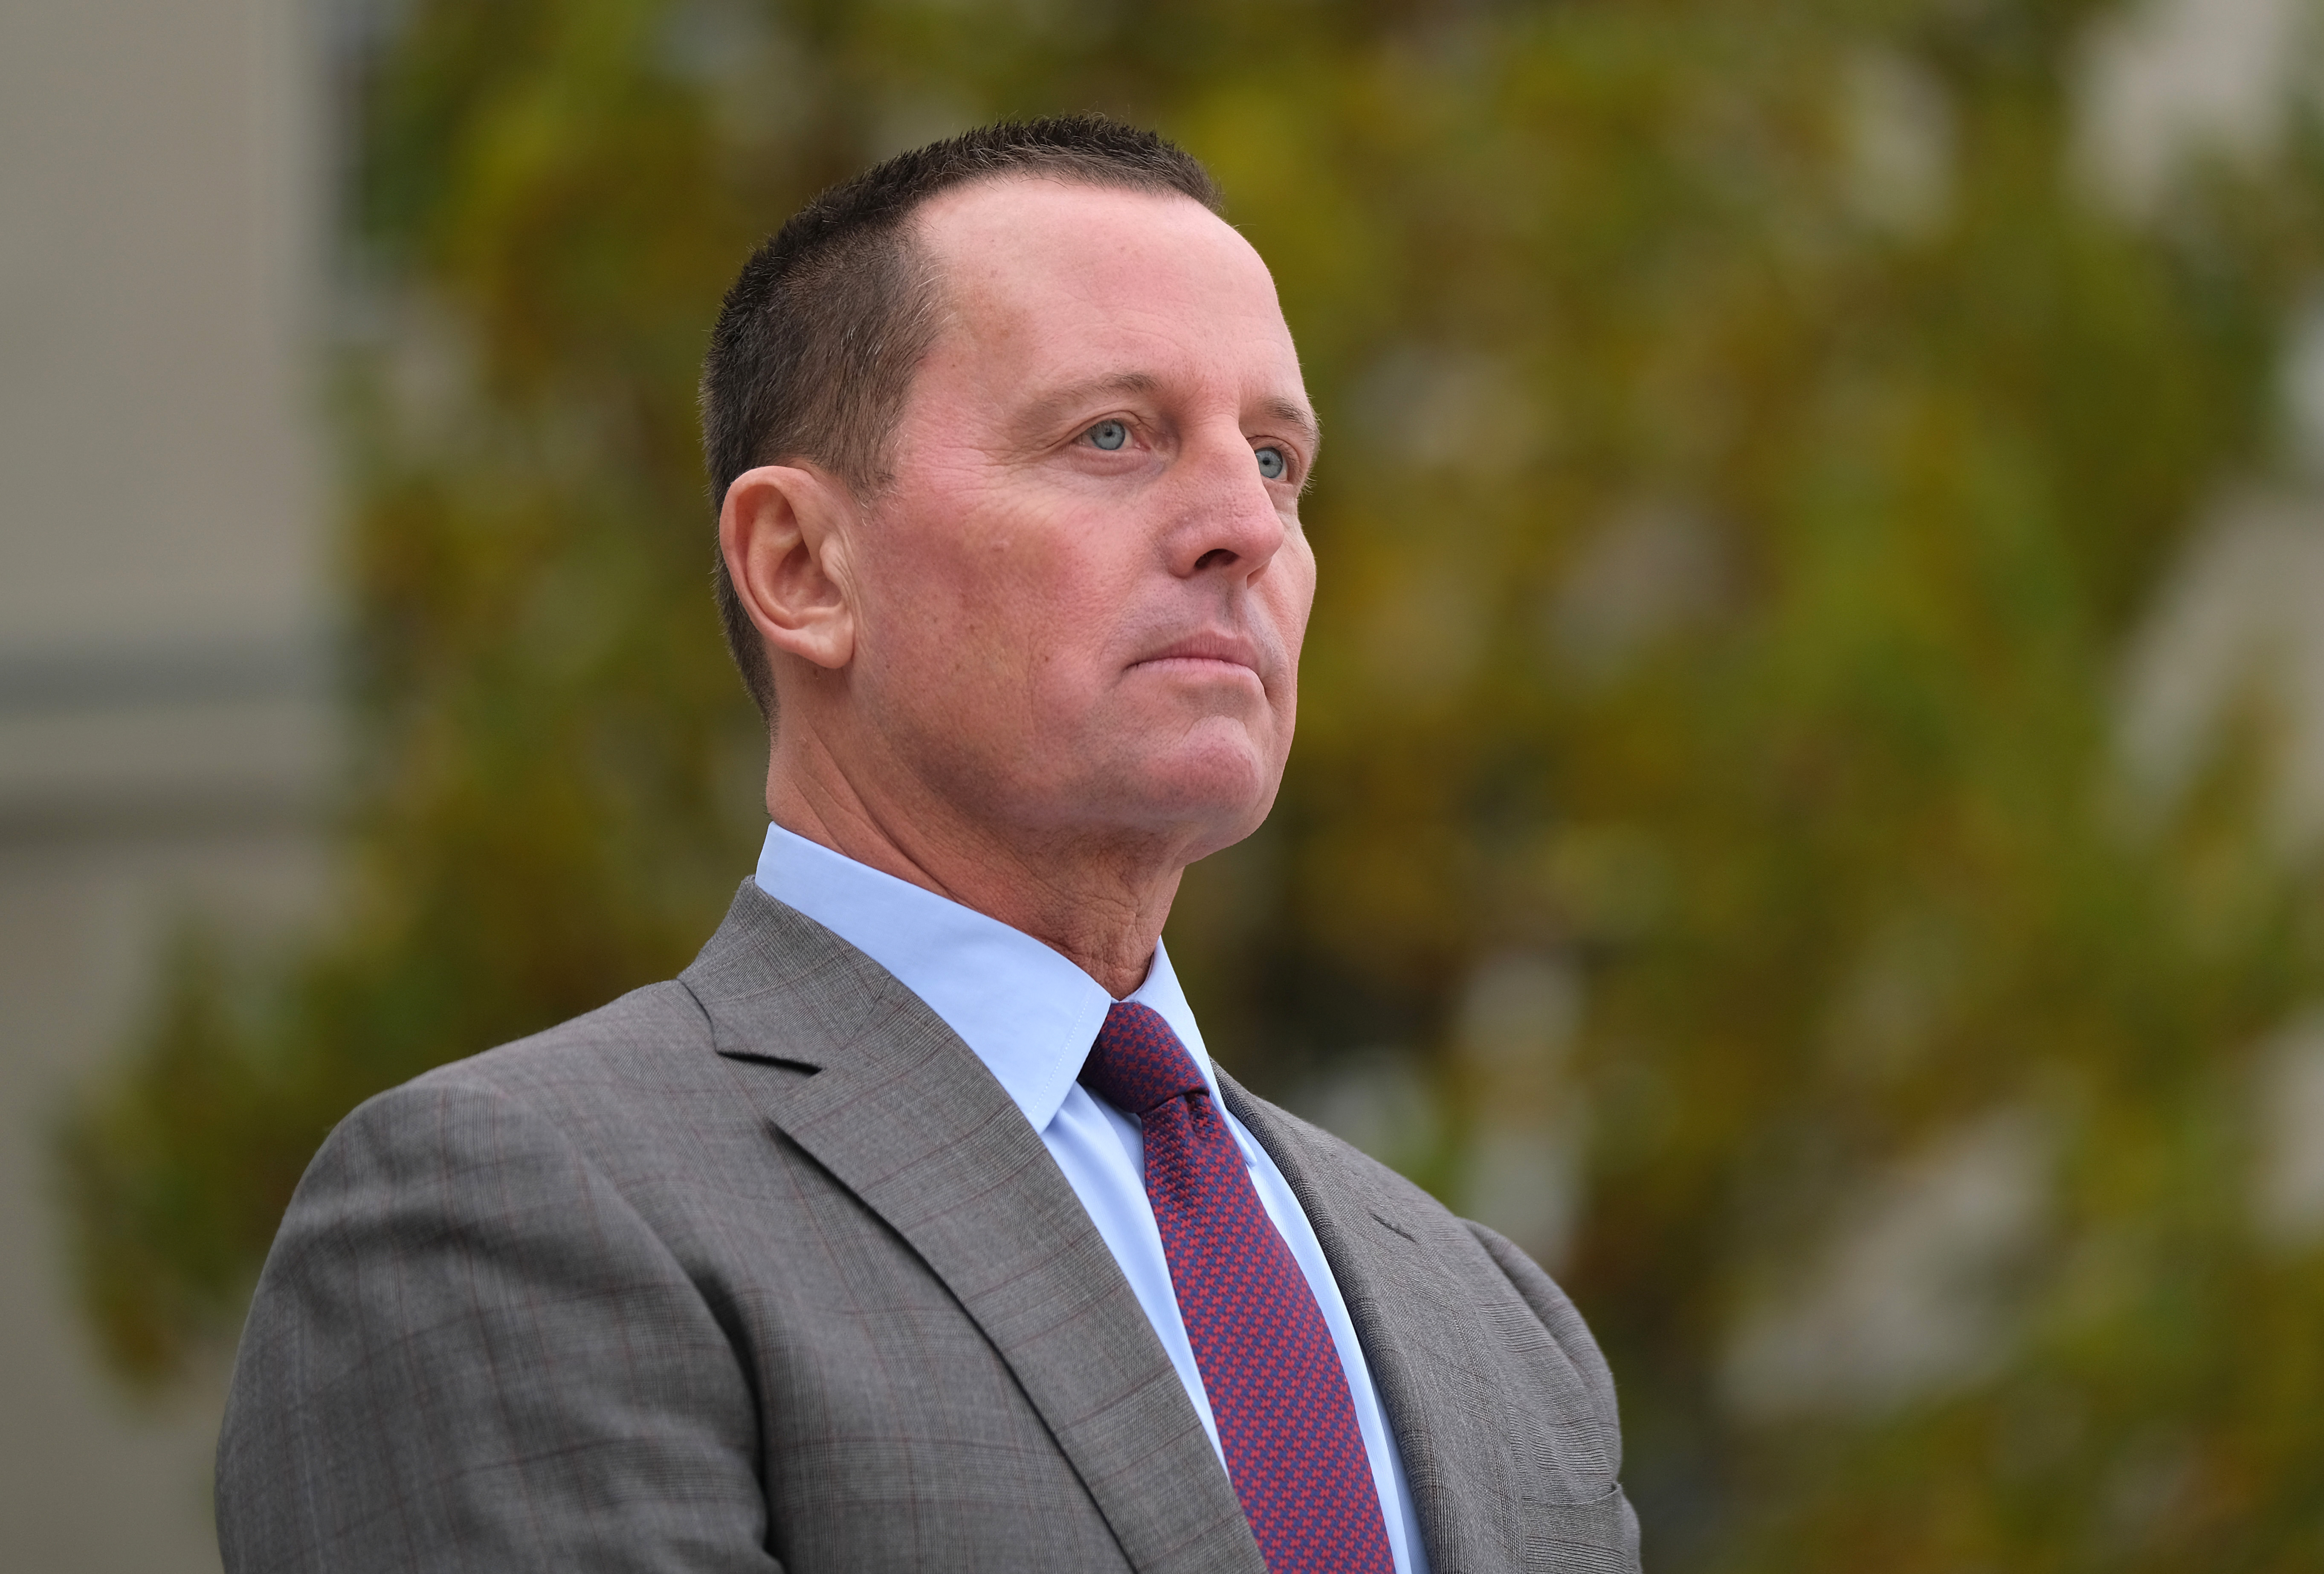 BERLIN, GERMANY - NOVEMBER 08: U.S. Ambassador to Germany Richard Grenell waits for the arrival of U.S. Secretary of State Mike Pompeo for talks with German Defense Minister Annegret Kramp-Karrenbauer at the Federal Defense Ministry on November 08, 2019 in Berlin, Germany. Pompeo is on a two-day visit to Germany ahead of the 30th anniversary of the fall of the Berlin Wall. (Photo by Sean Gallup/Getty Images)